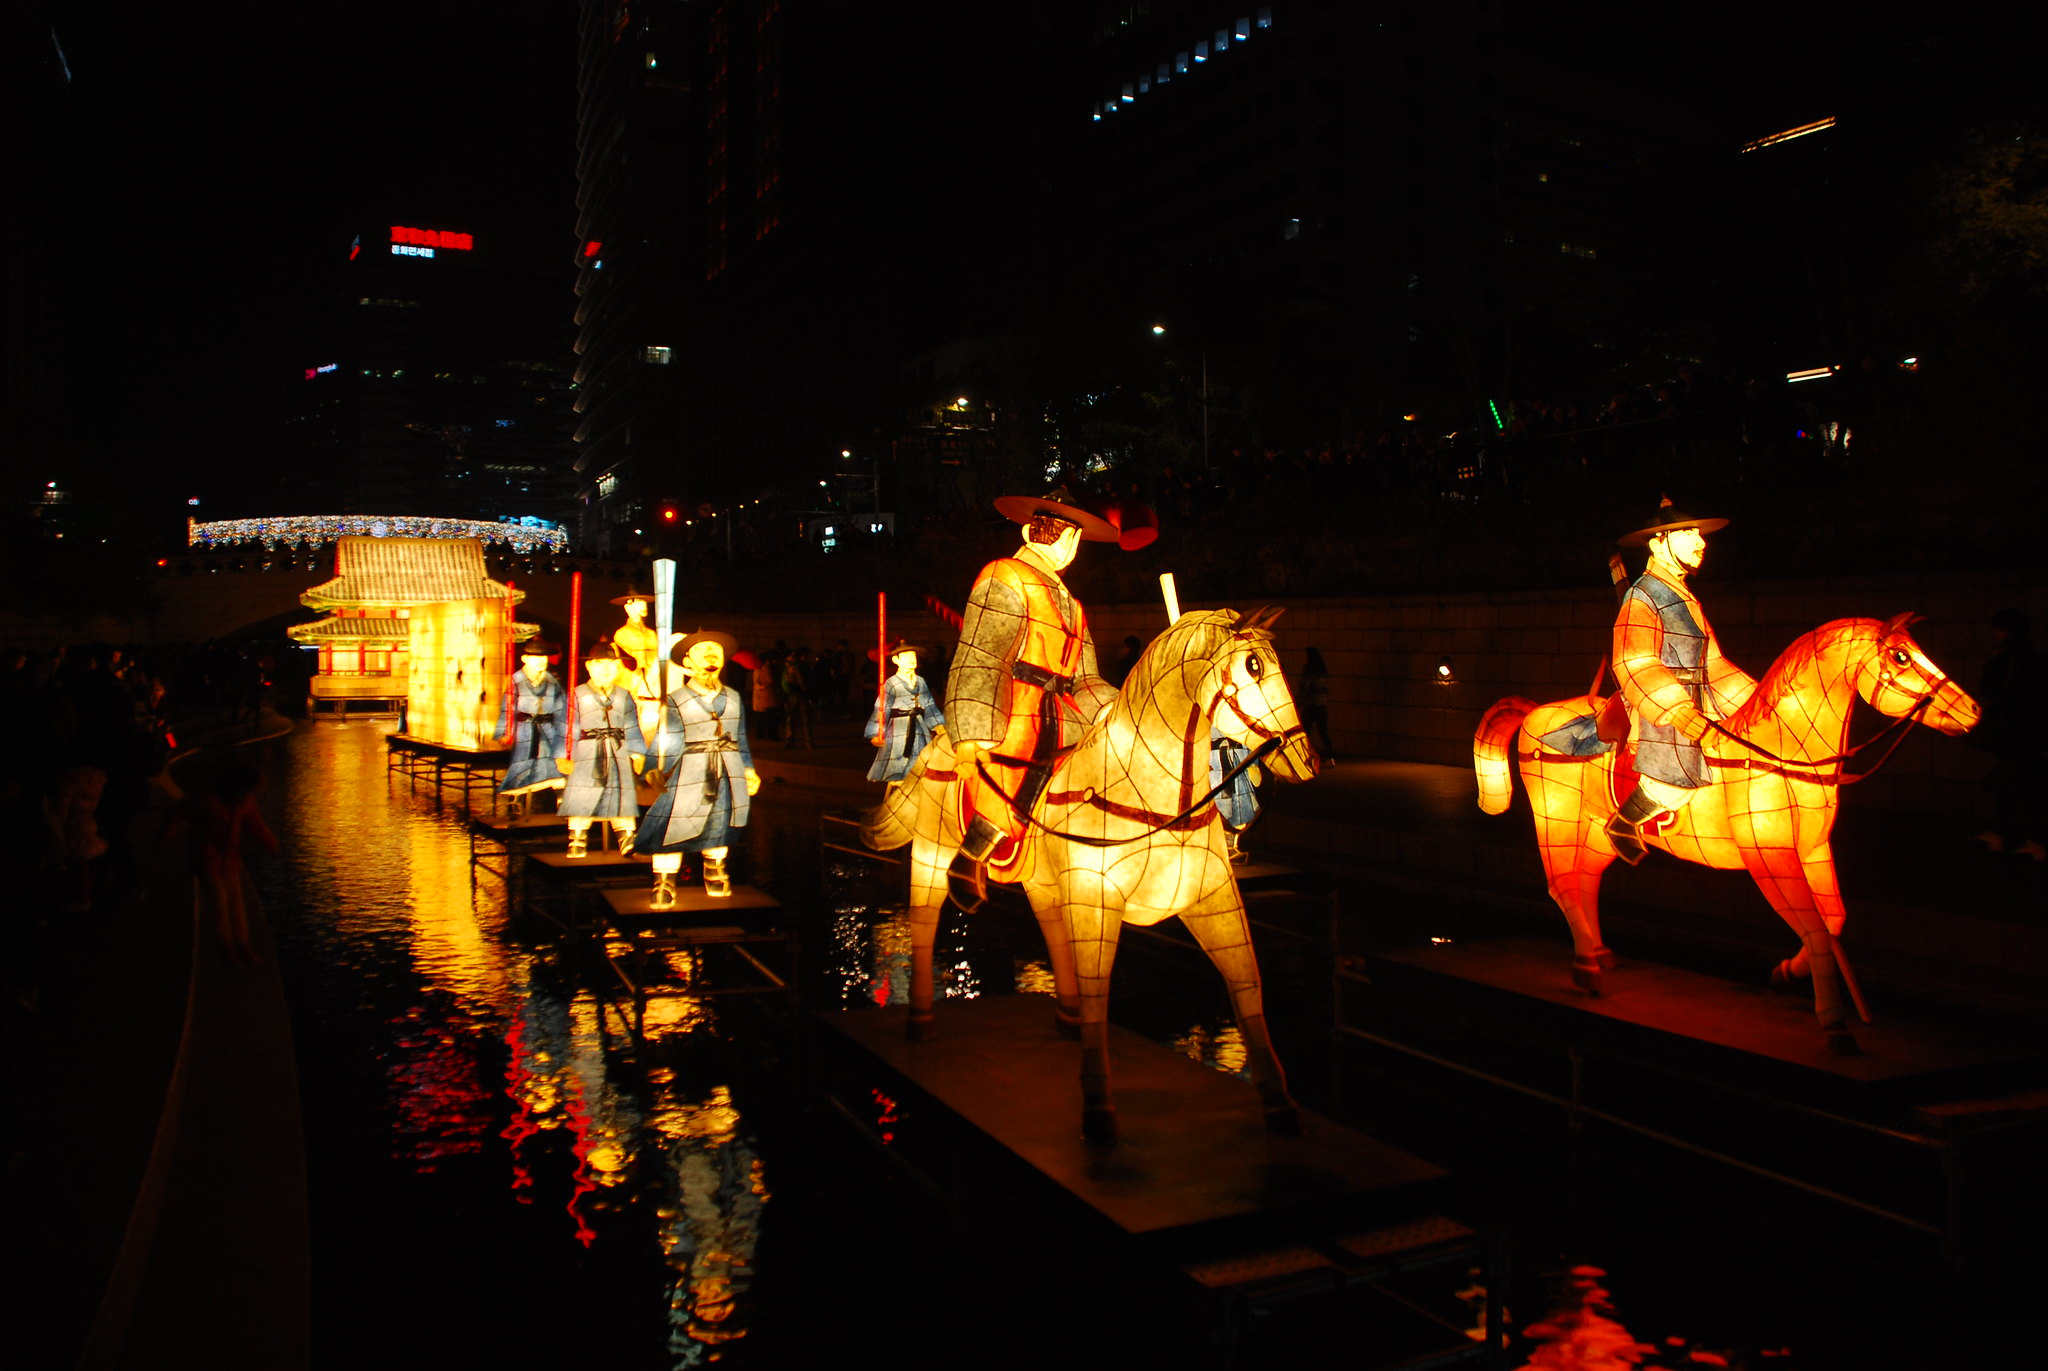 Seoul then and now - Cheonggyecheon stream, Seoul lantern festival